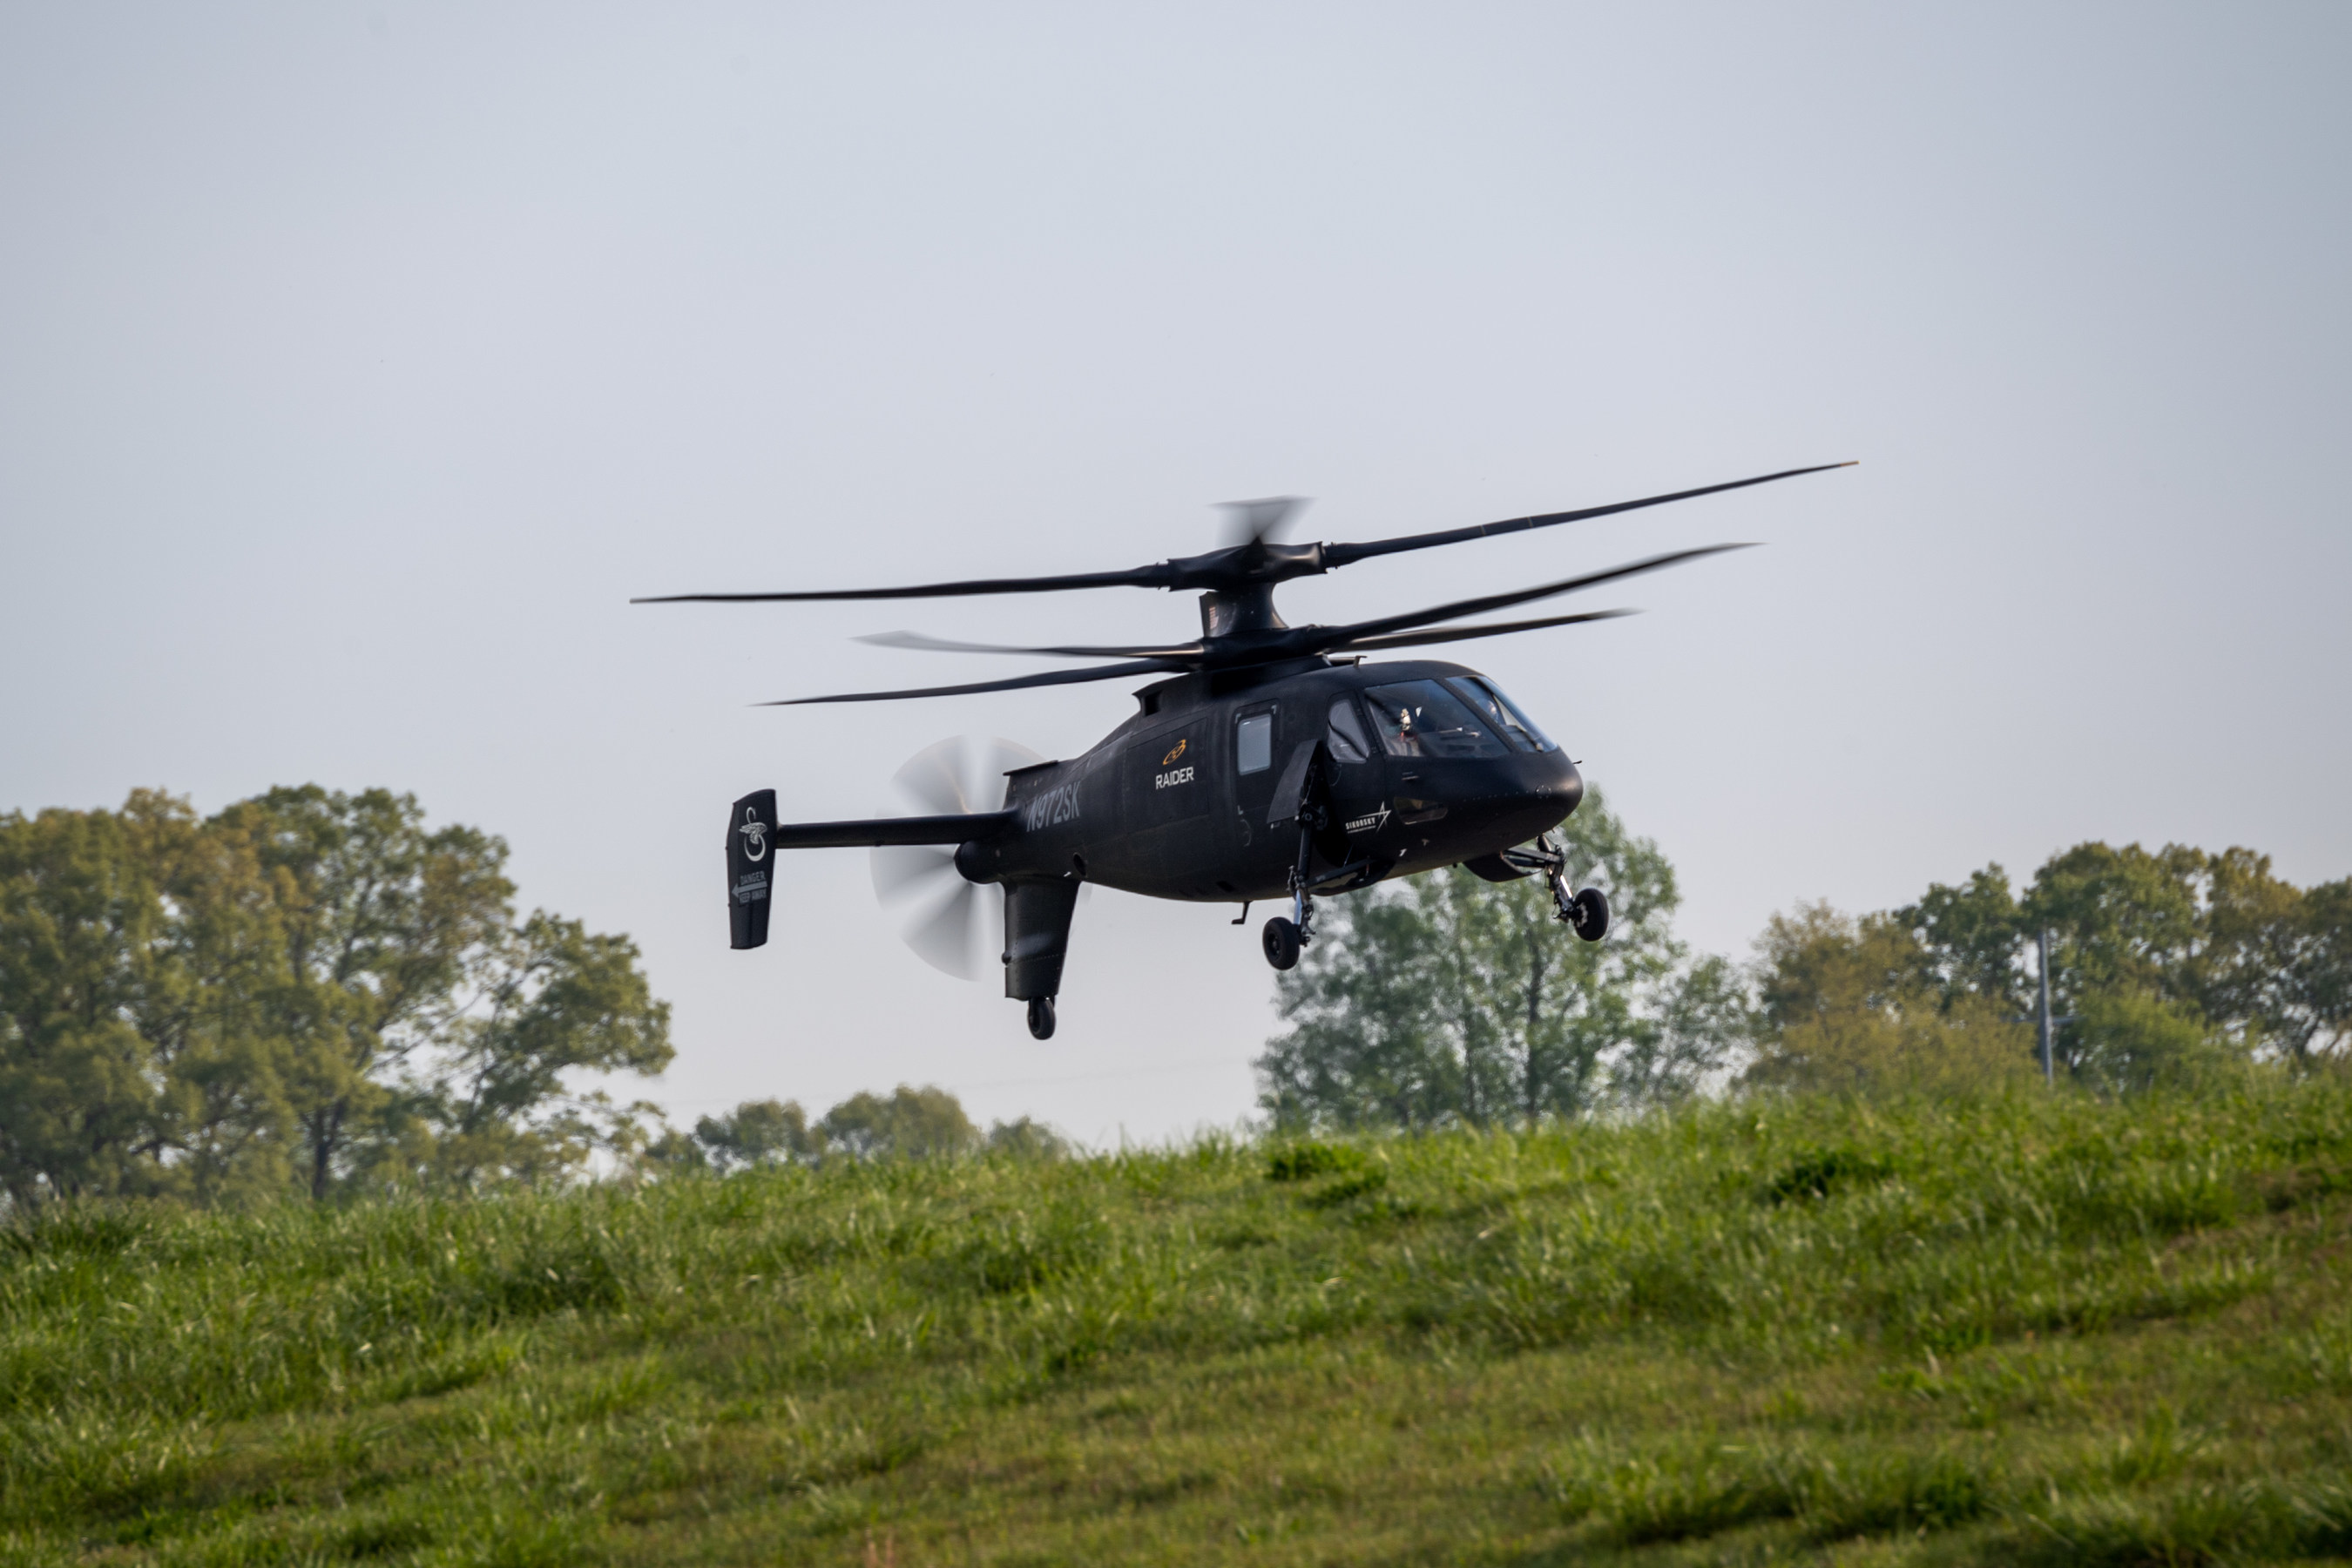 Sikorsky has been flying and testing X2 Technology for more than a decade, accumulating nearly 500 hours